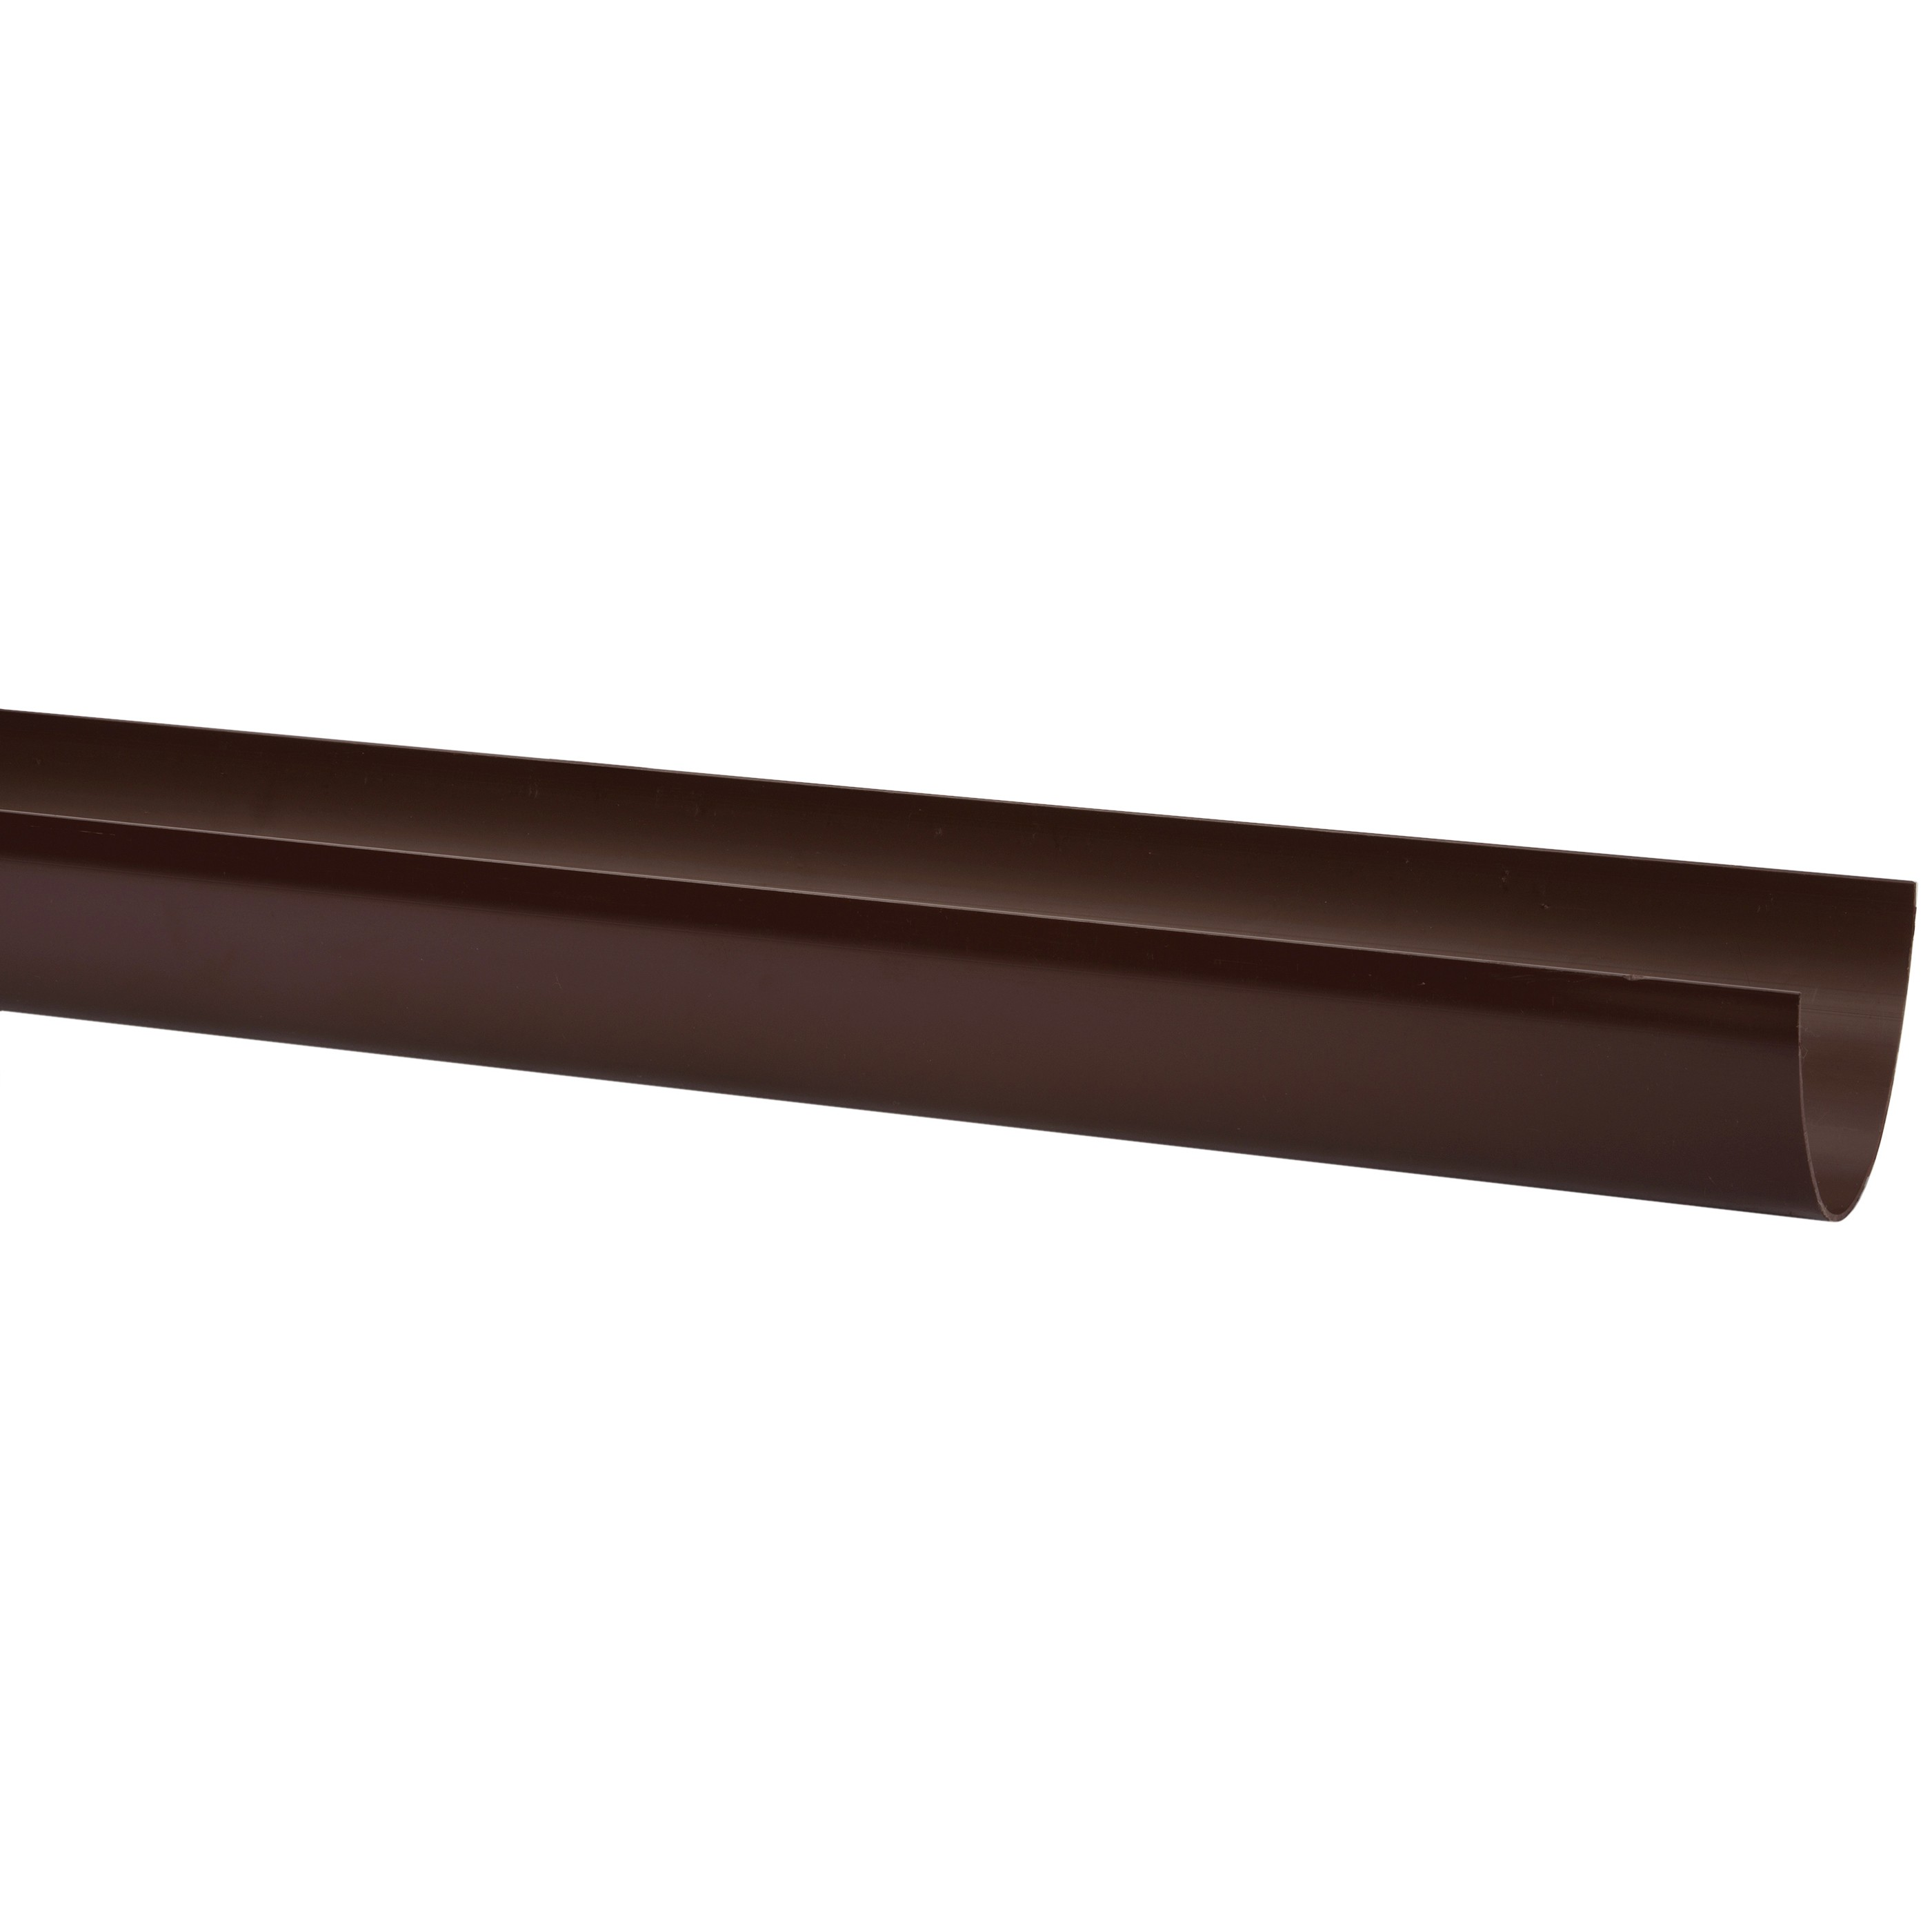 Polypipe 117mm Polyflow Deep Capacity Gutter - Brown, 4 metre